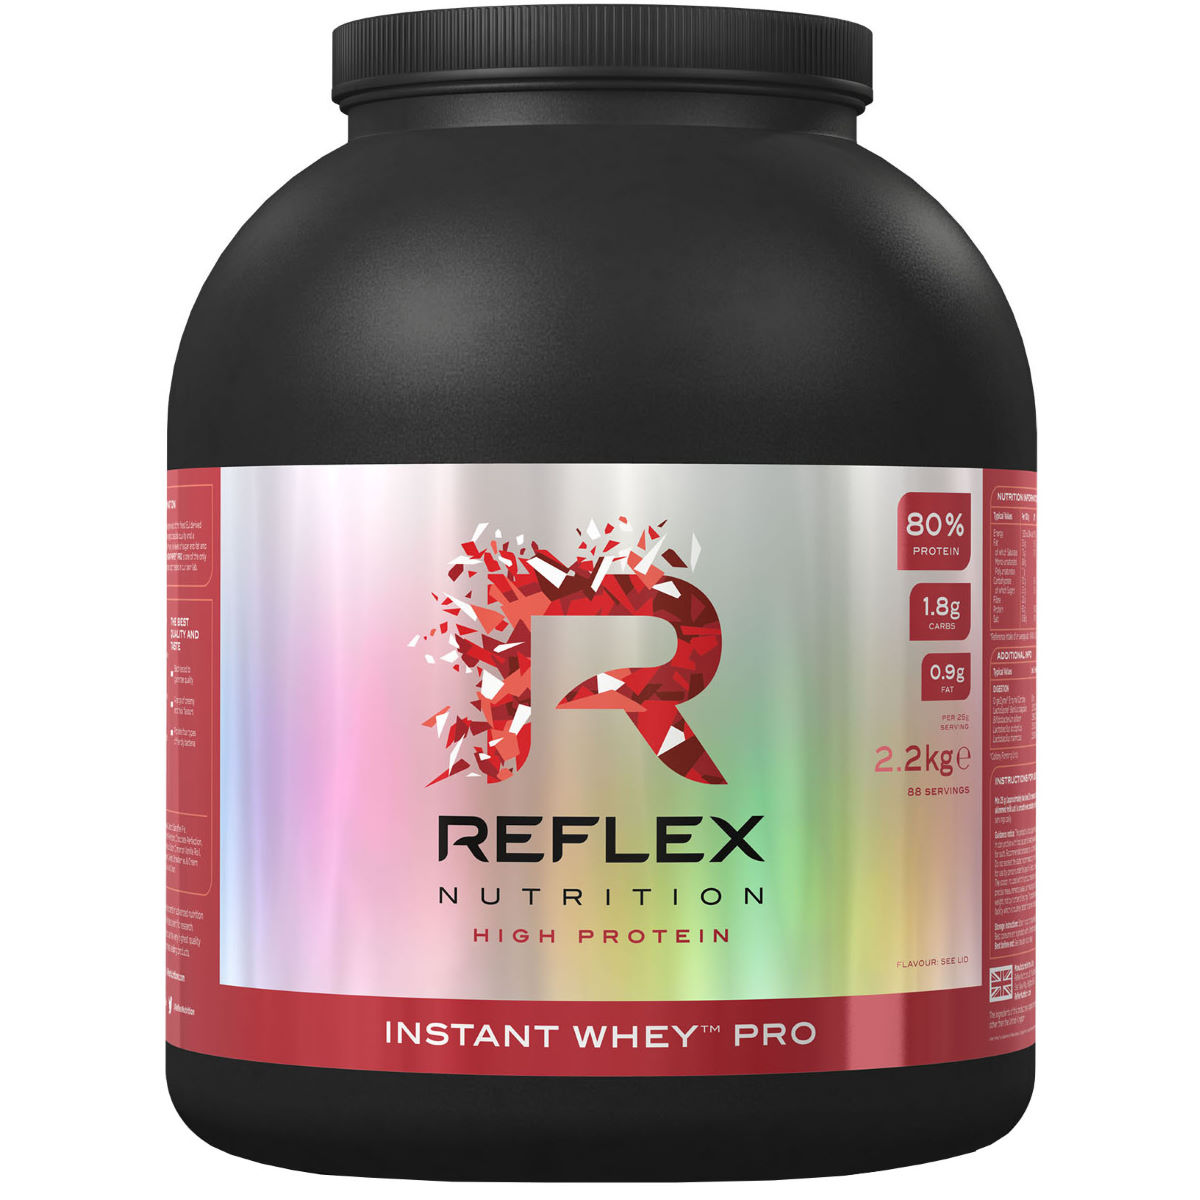 Reflex Reflex Instant Whey Pro (2.2kg)   Supplements